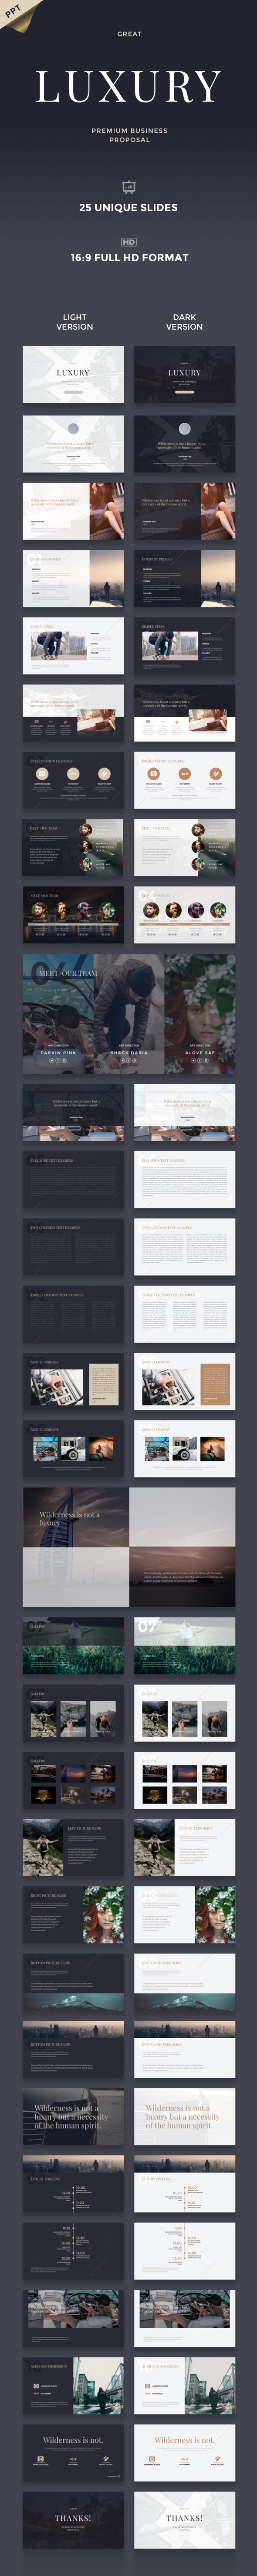 Great Luxury Premium Business Proposal - PowerPoint Template - Business PowerPoint Templates